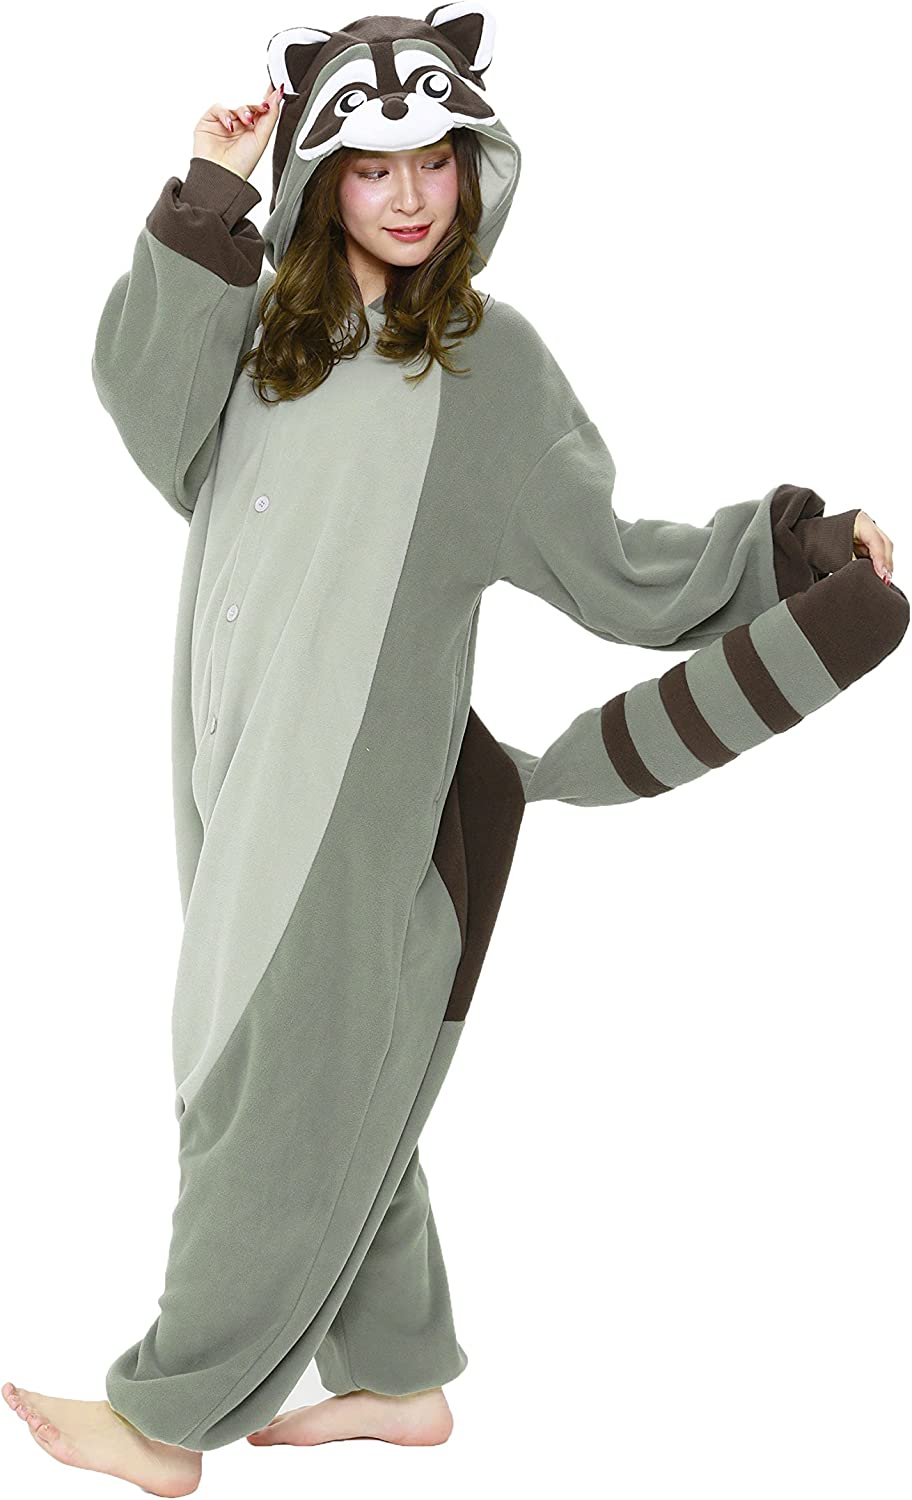 Raccoon Onesie Costume (Adults)